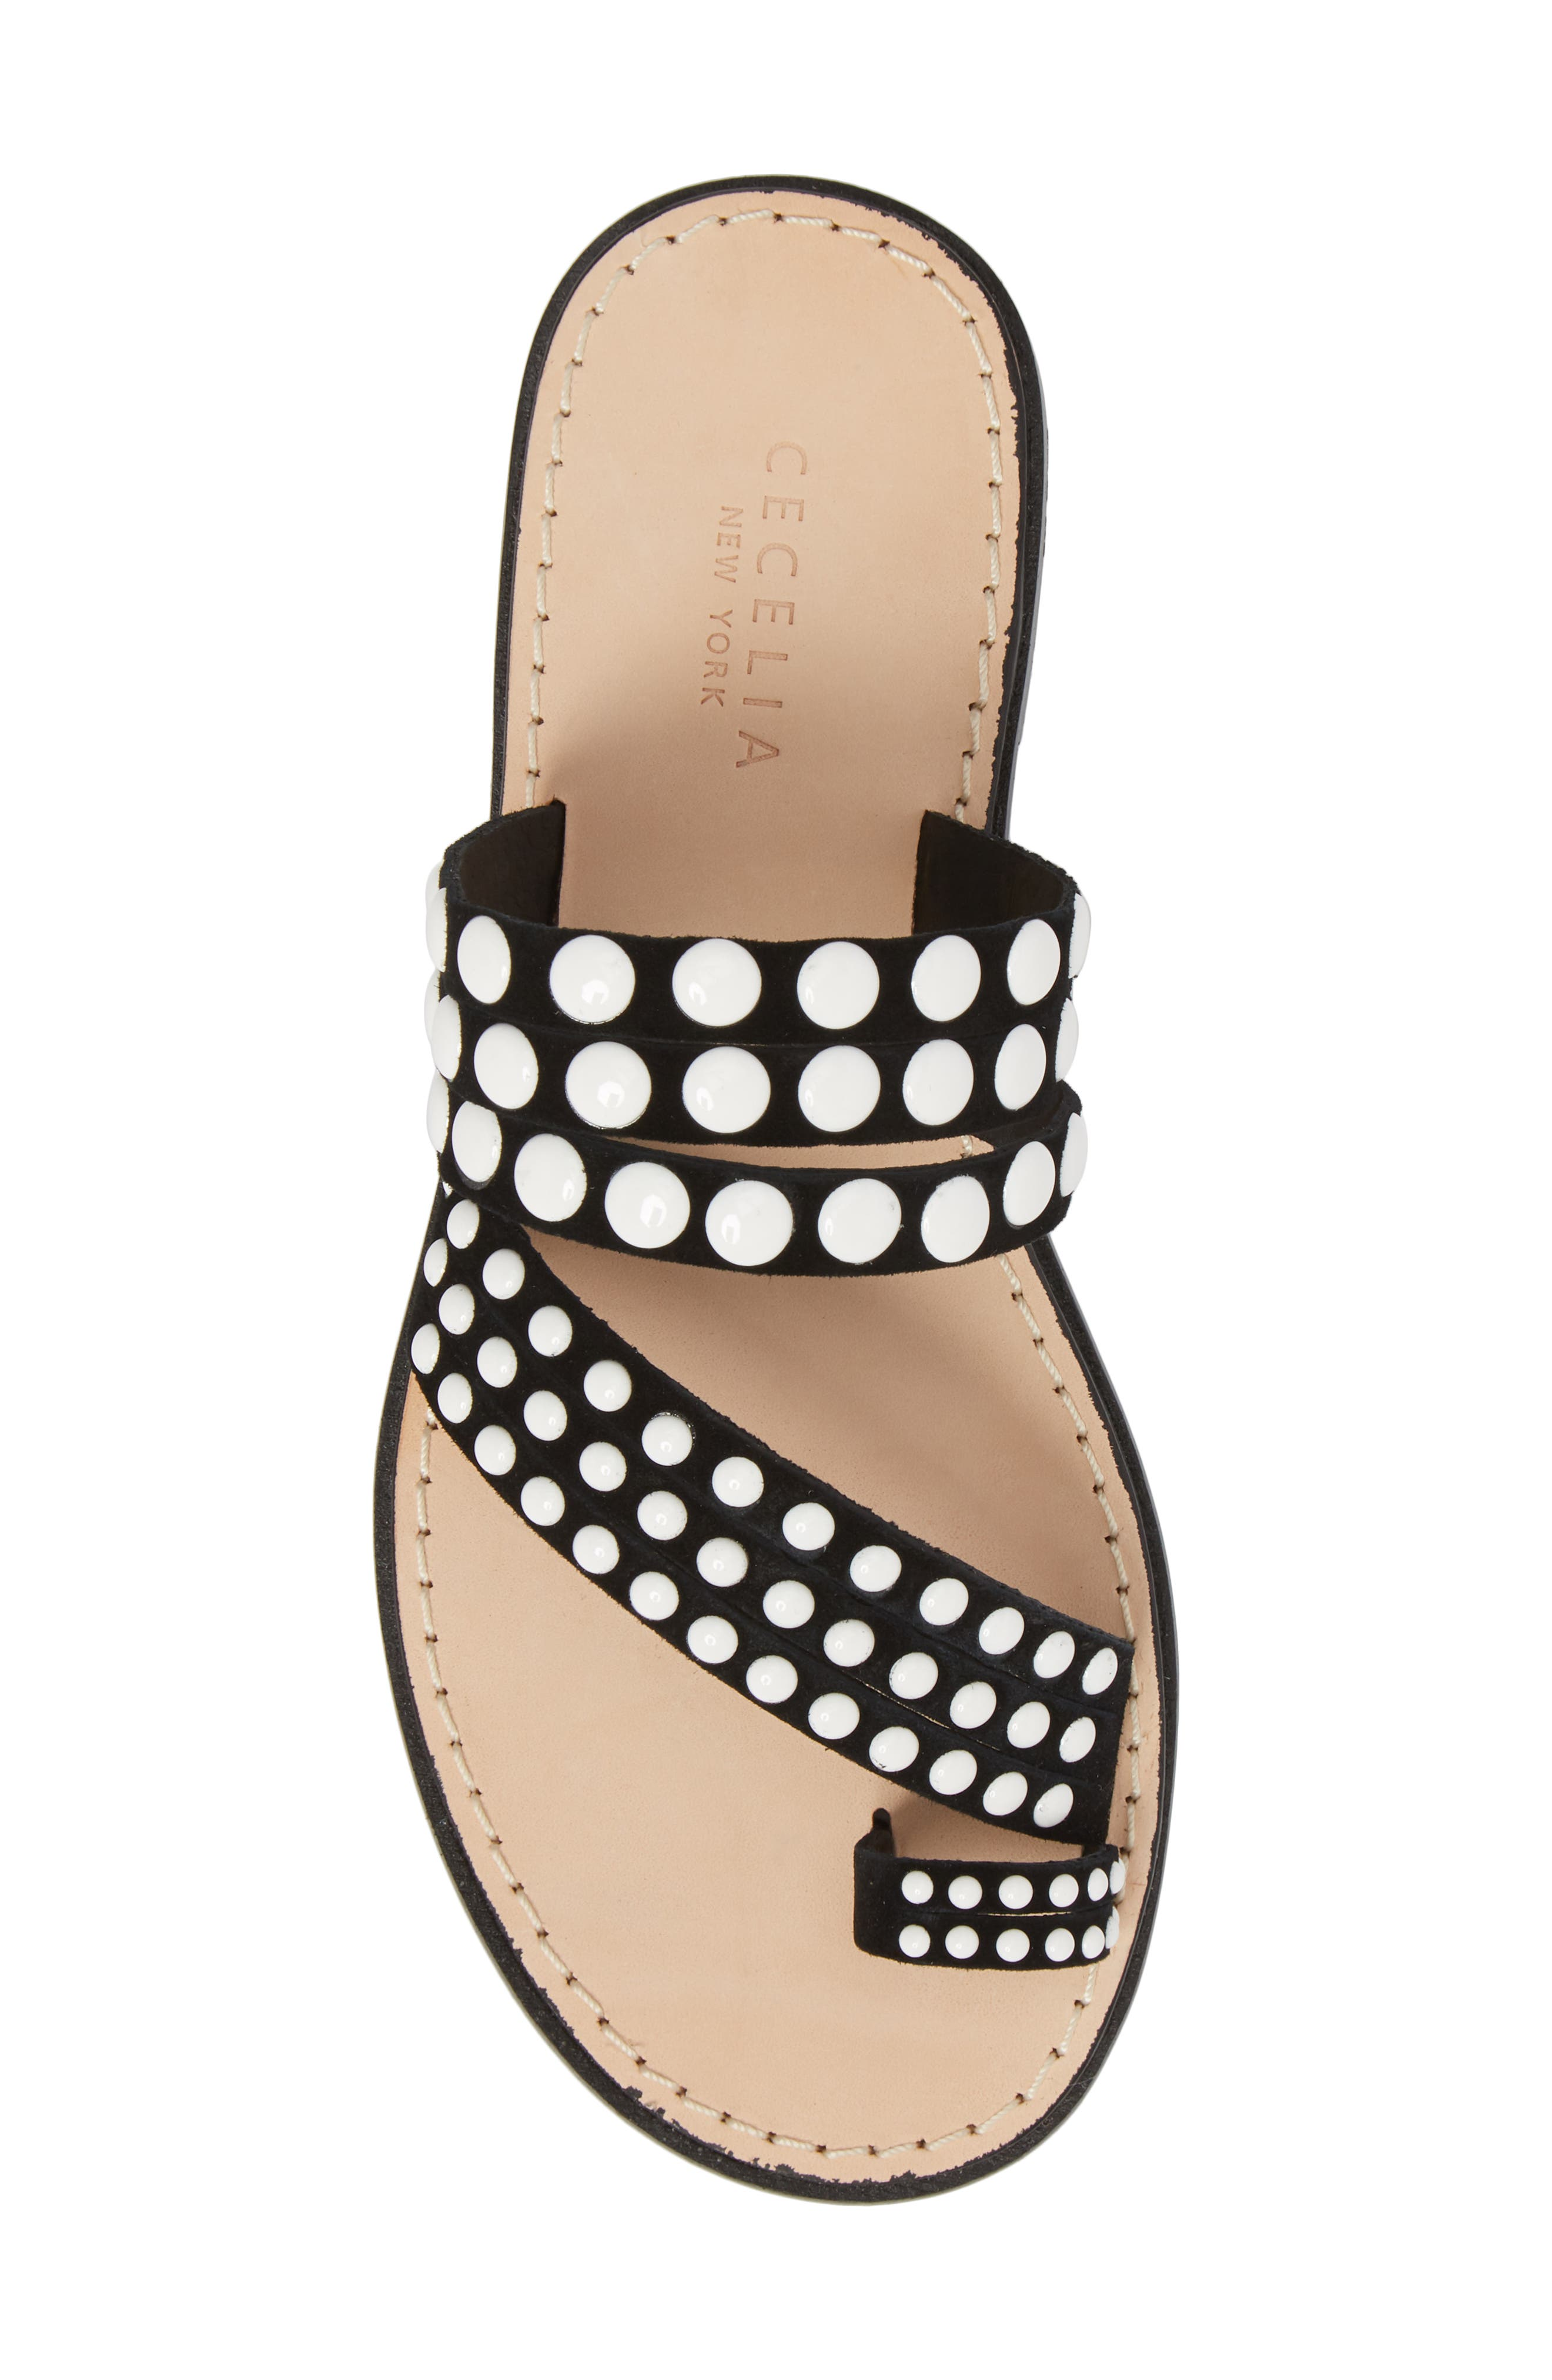 Pezz Studded Sandal,                             Alternate thumbnail 5, color,                             Black Suede